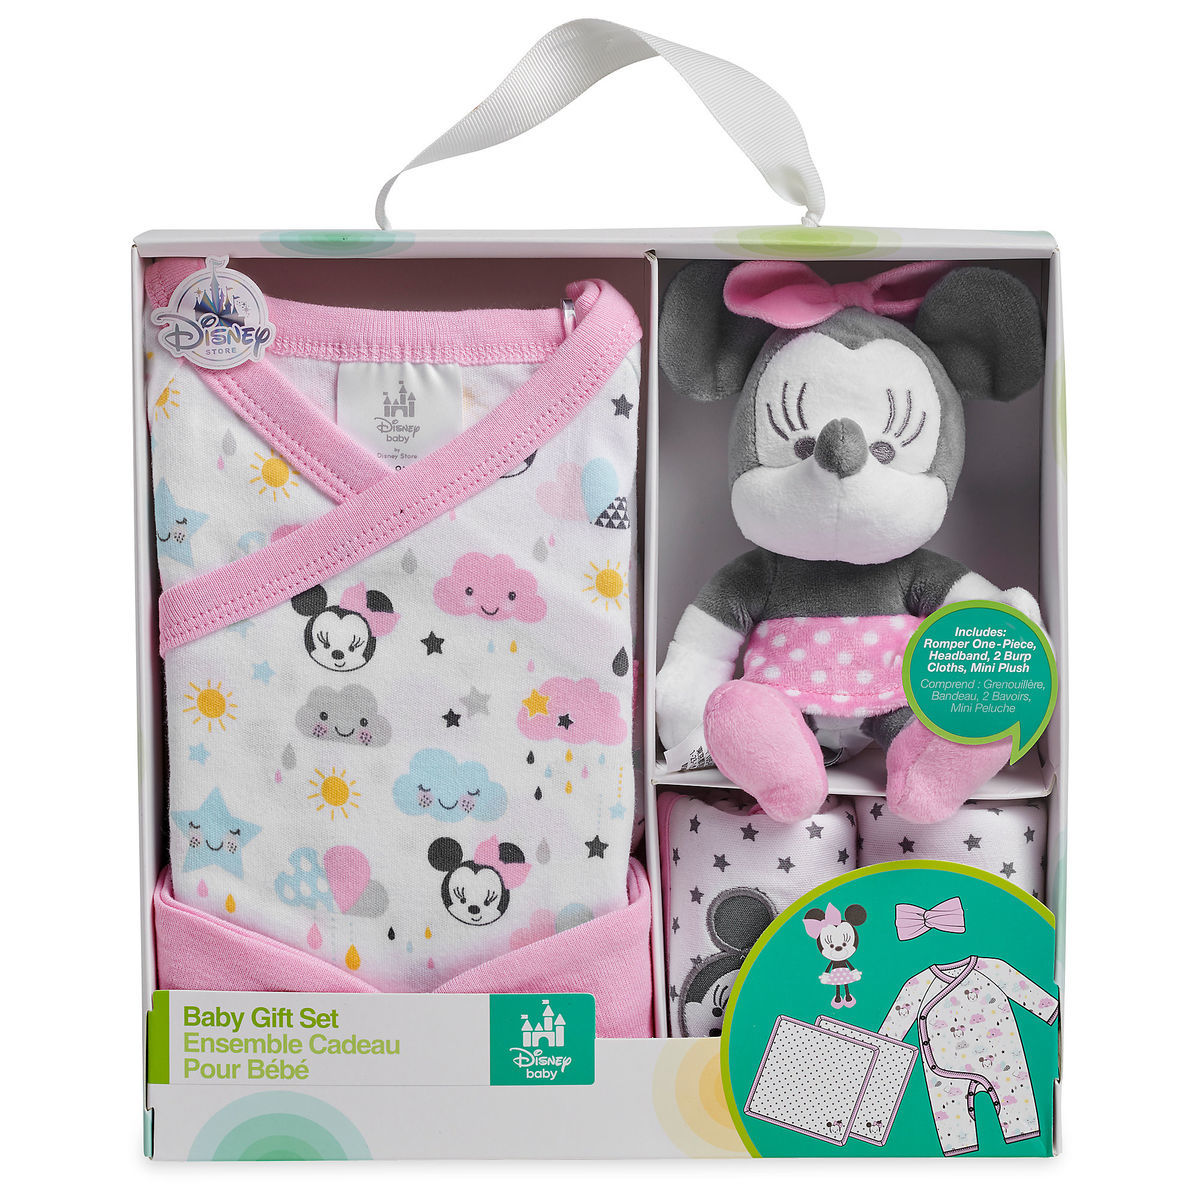 421d3eb35 Minnie Mouse Gift Set for Baby